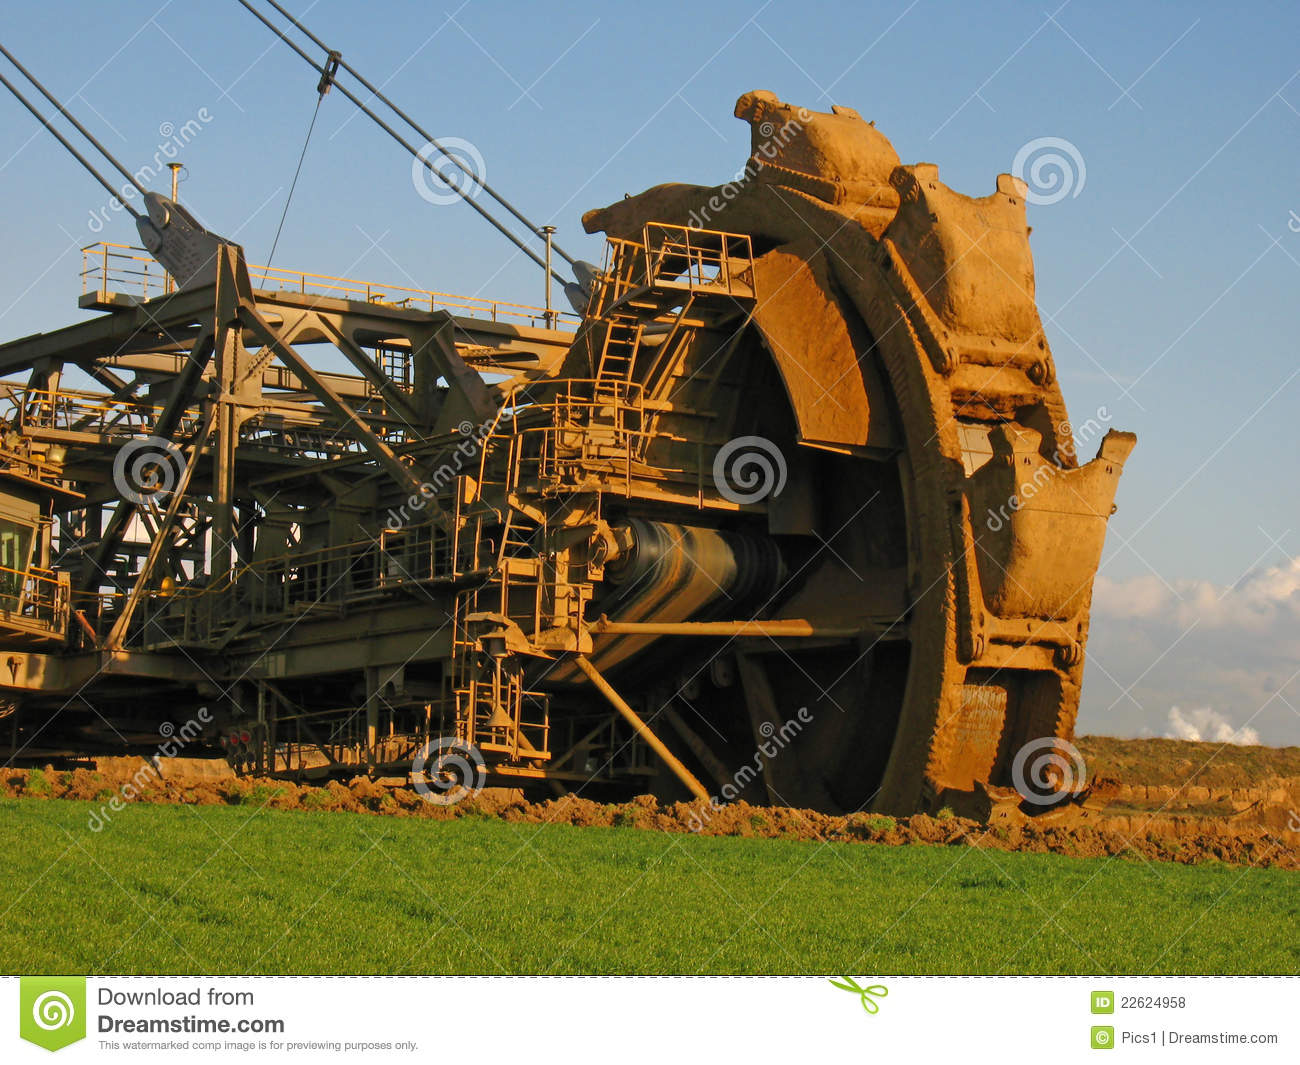 Bucket Wheel Excavator Royalty Free Stock Photos.